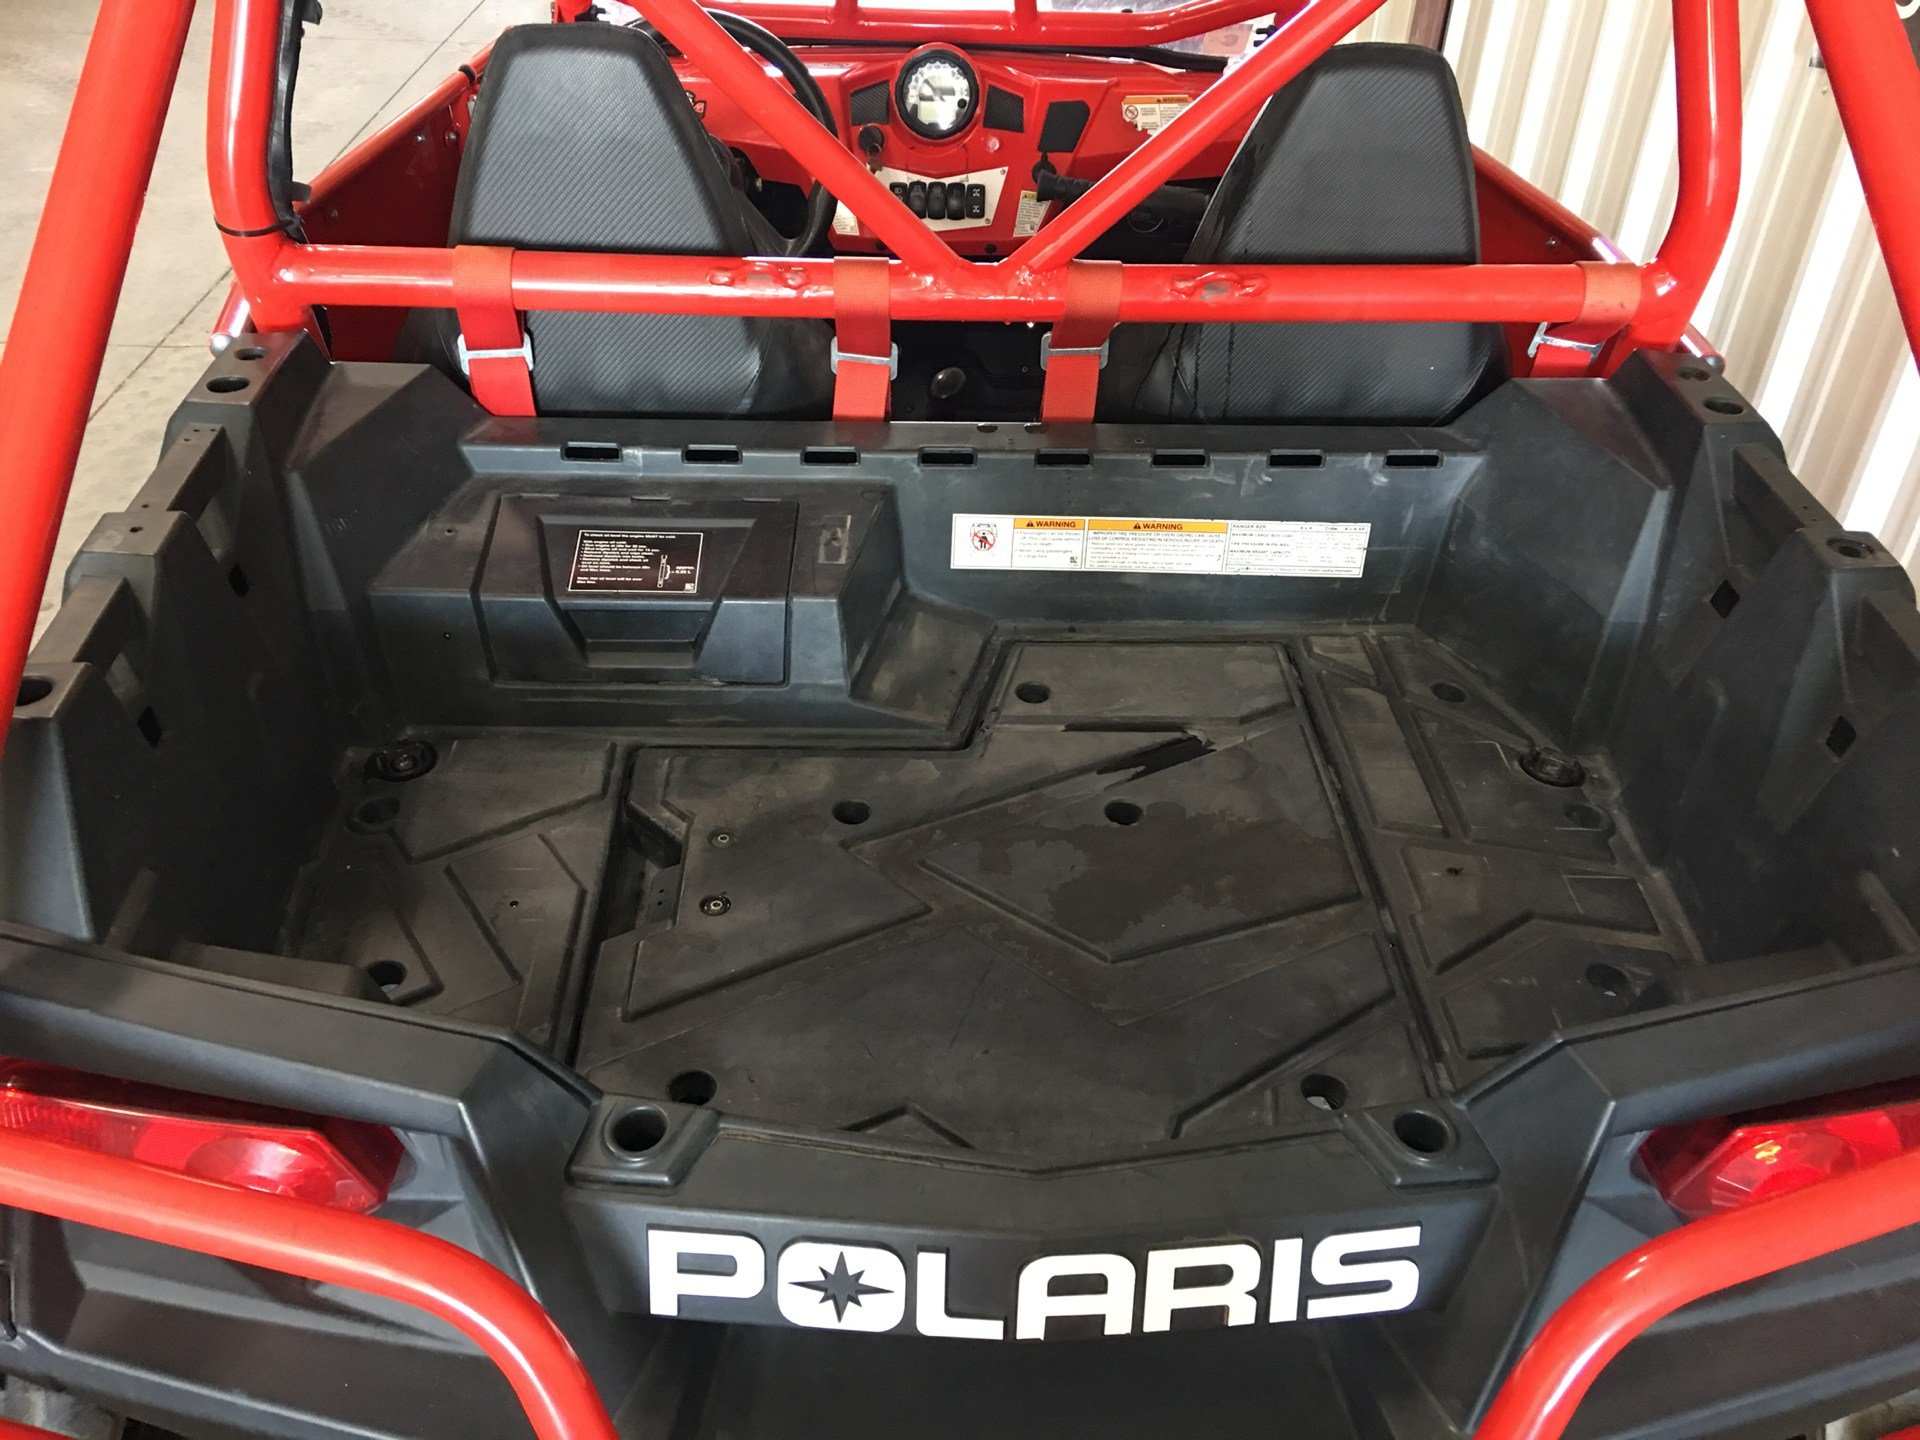 2011 Polaris Ranger RZR® XP 900 in Montezuma, Kansas - Photo 4